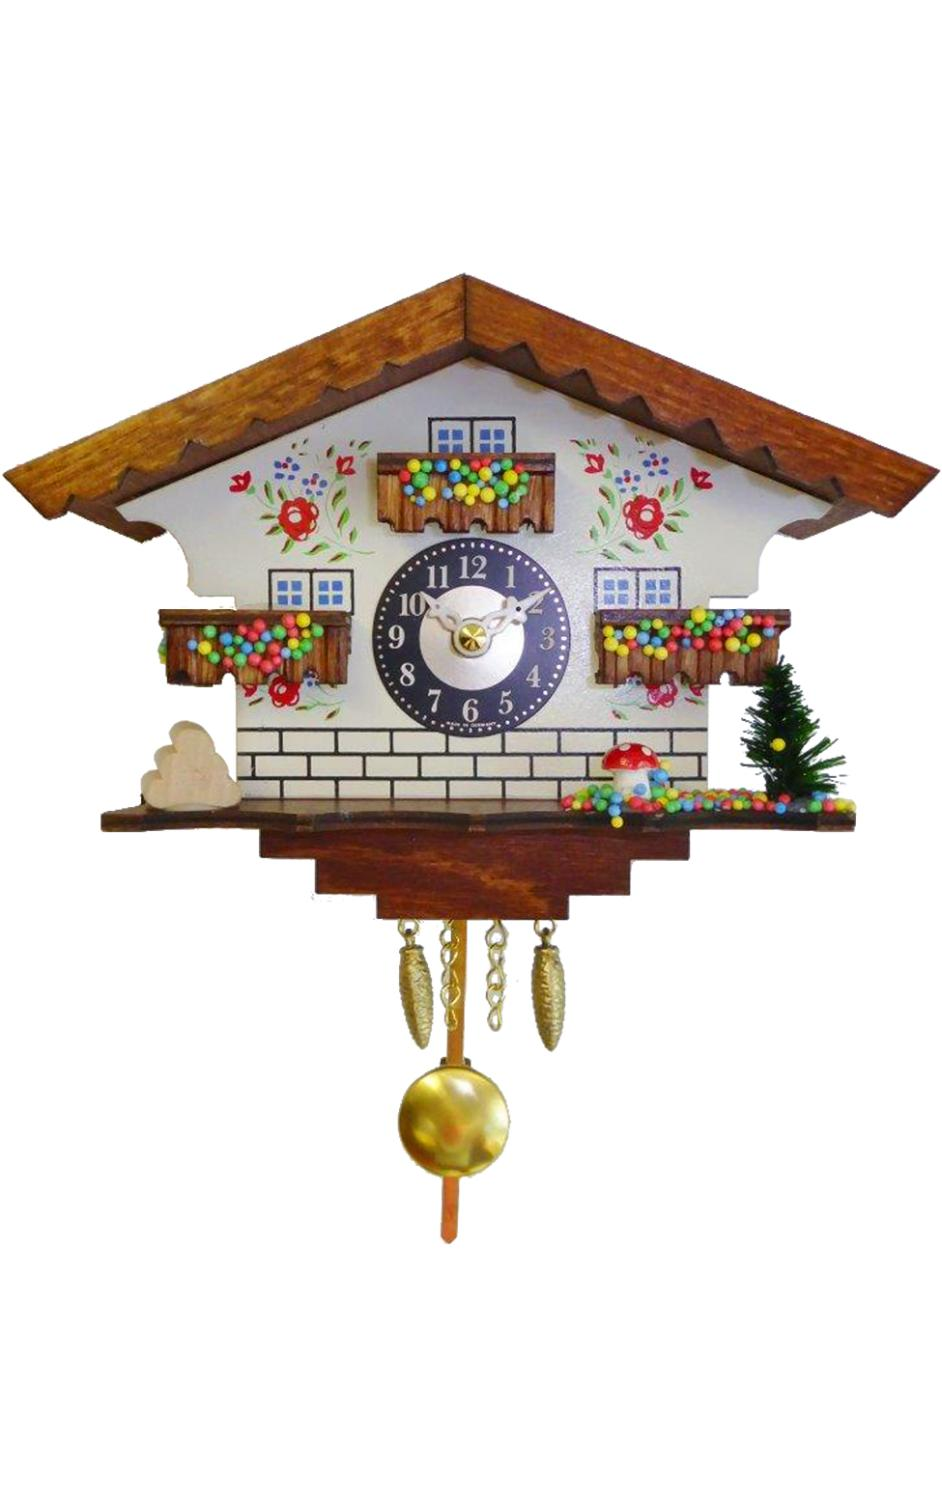 0183QP - Engstler Battery-operated Clock - Mini Size with Music/Chimes - 5.75